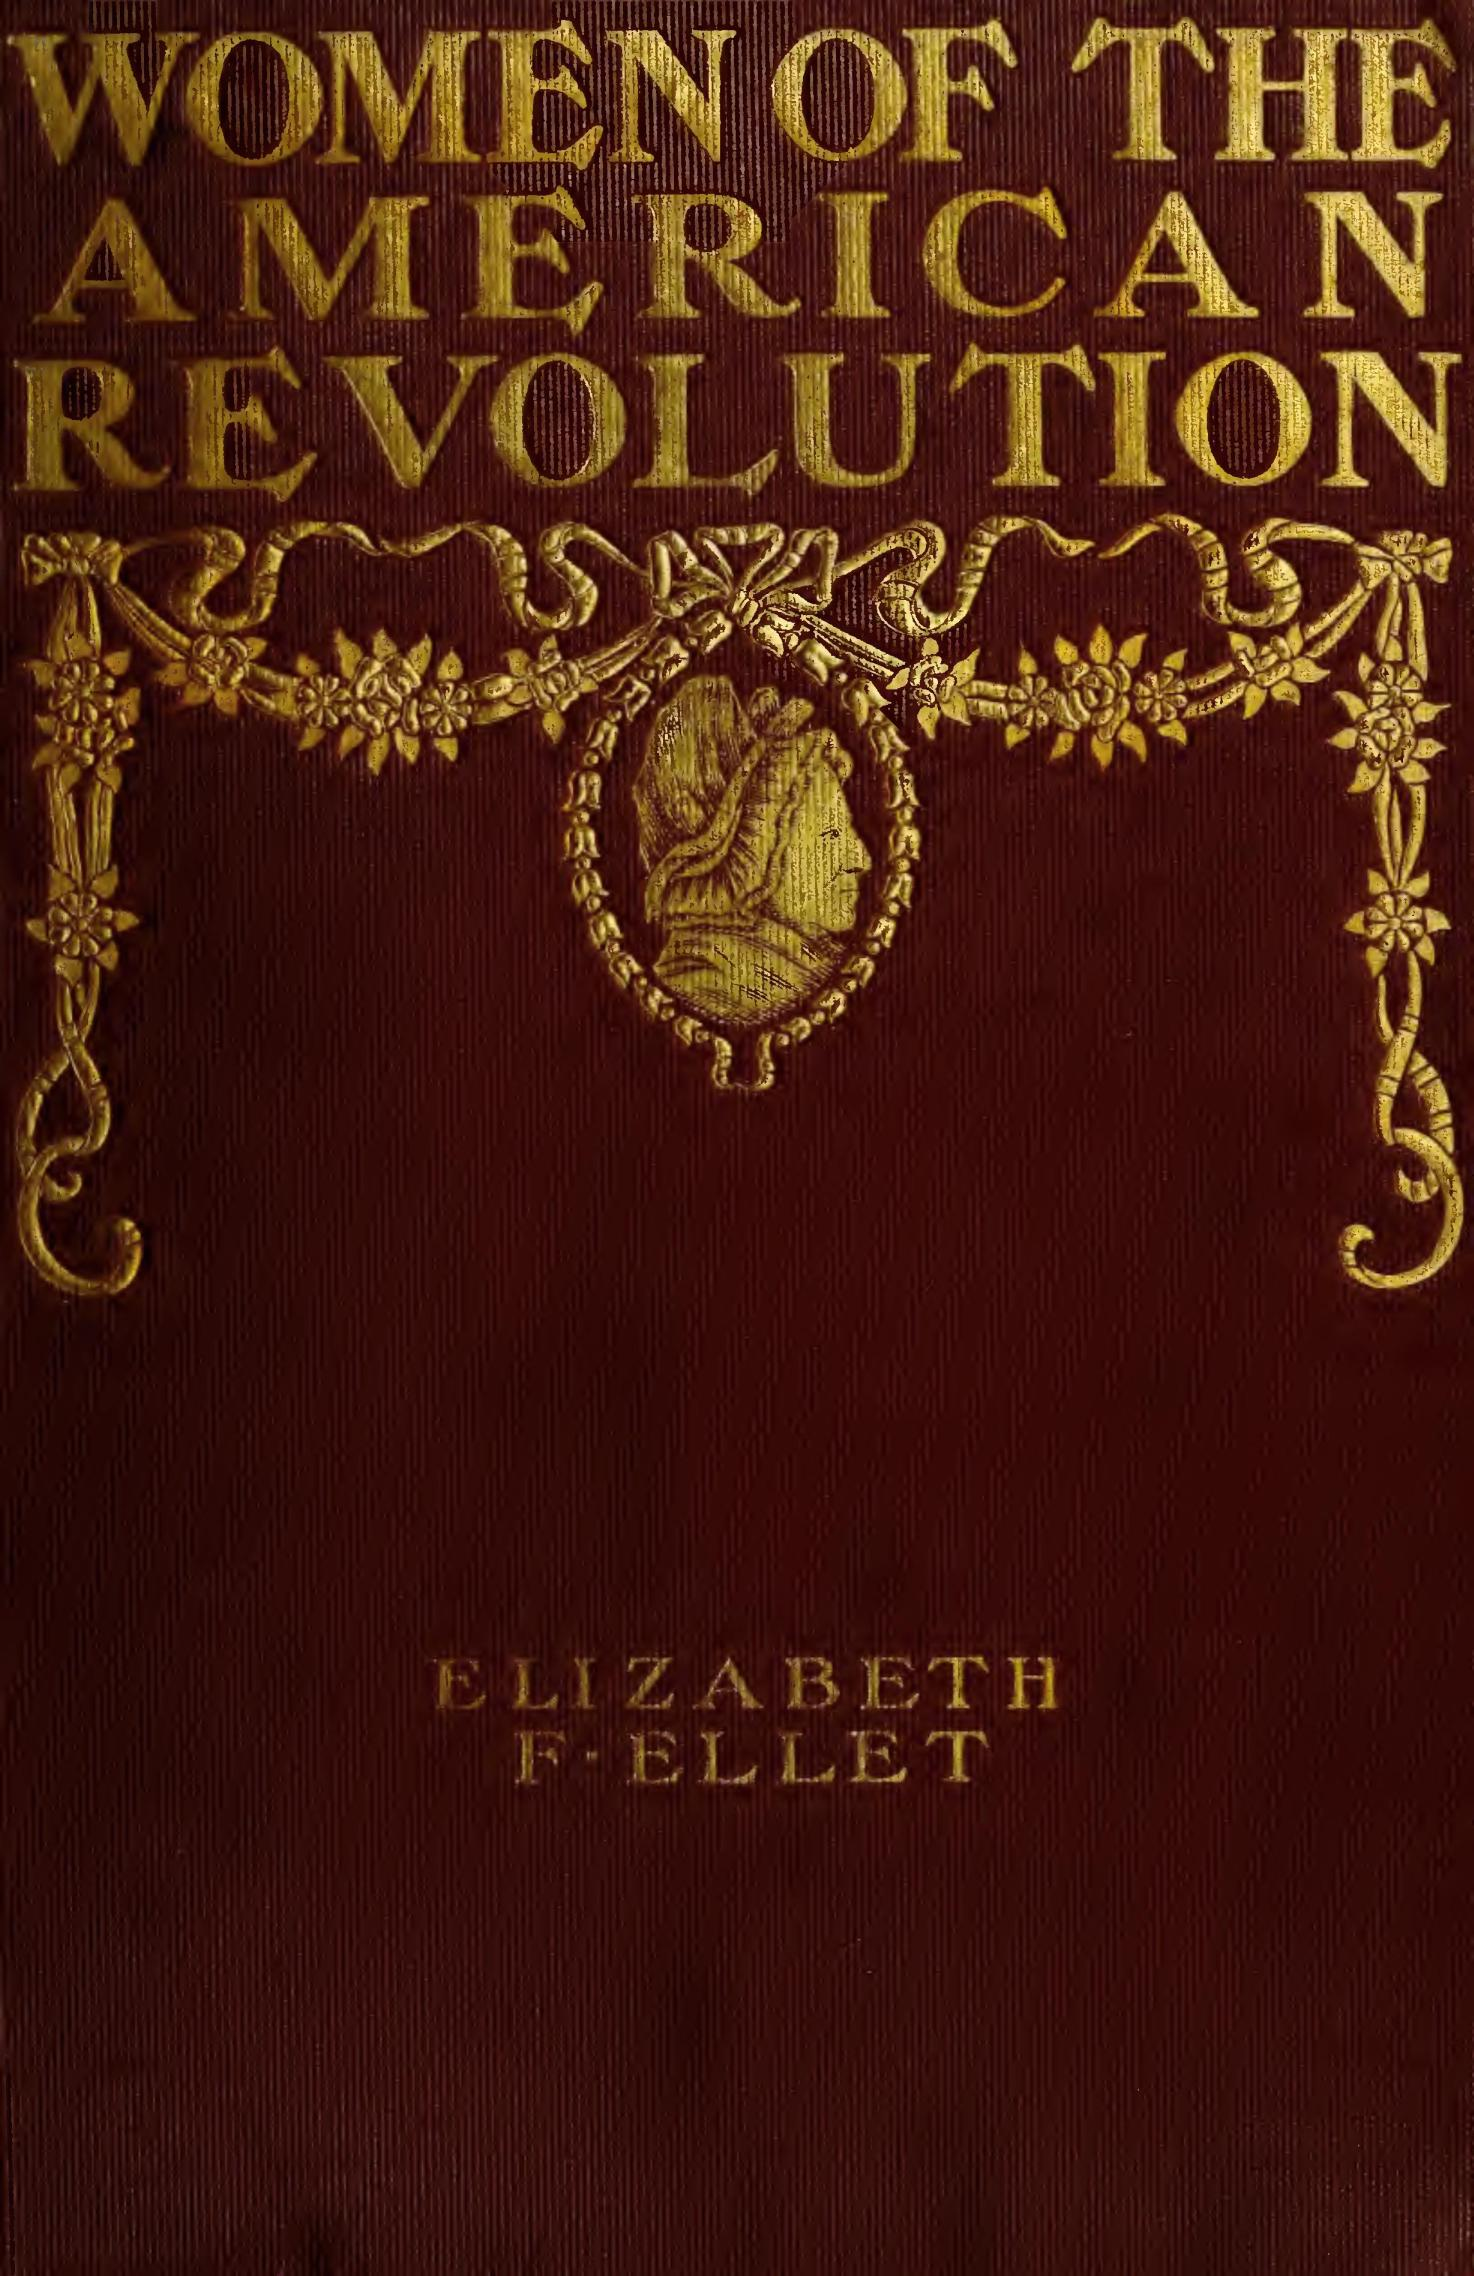 The women of the american revolution by elizabeth f ellet the women of the american revolution fandeluxe Images